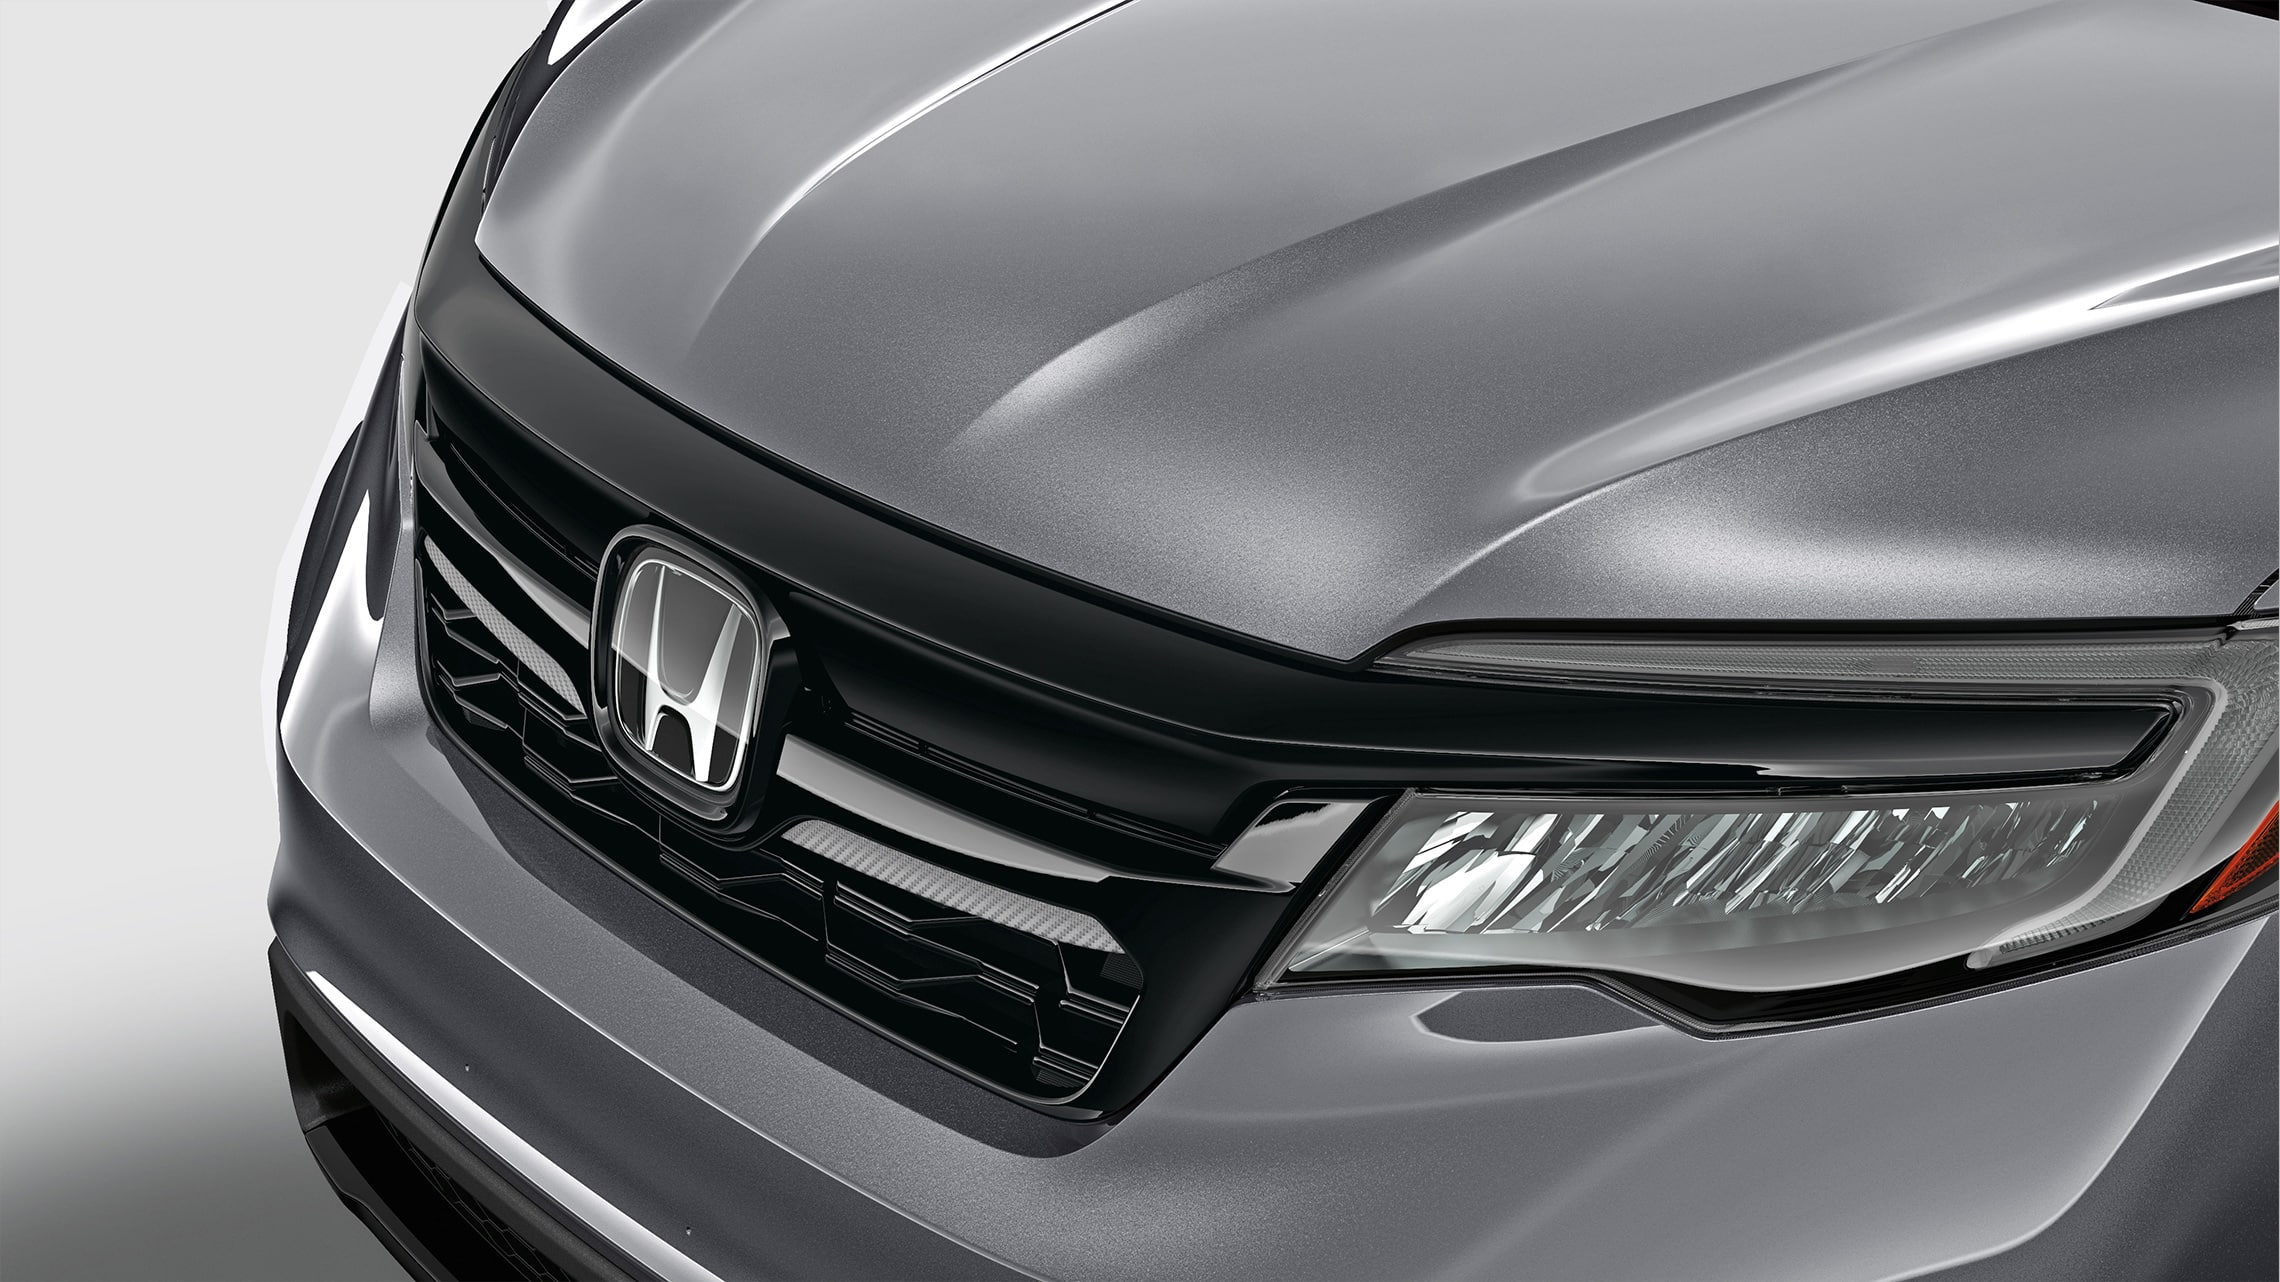 Front grille carbon inserts detail in black on 2021 Honda Pilot in Modern Steel Metallic.